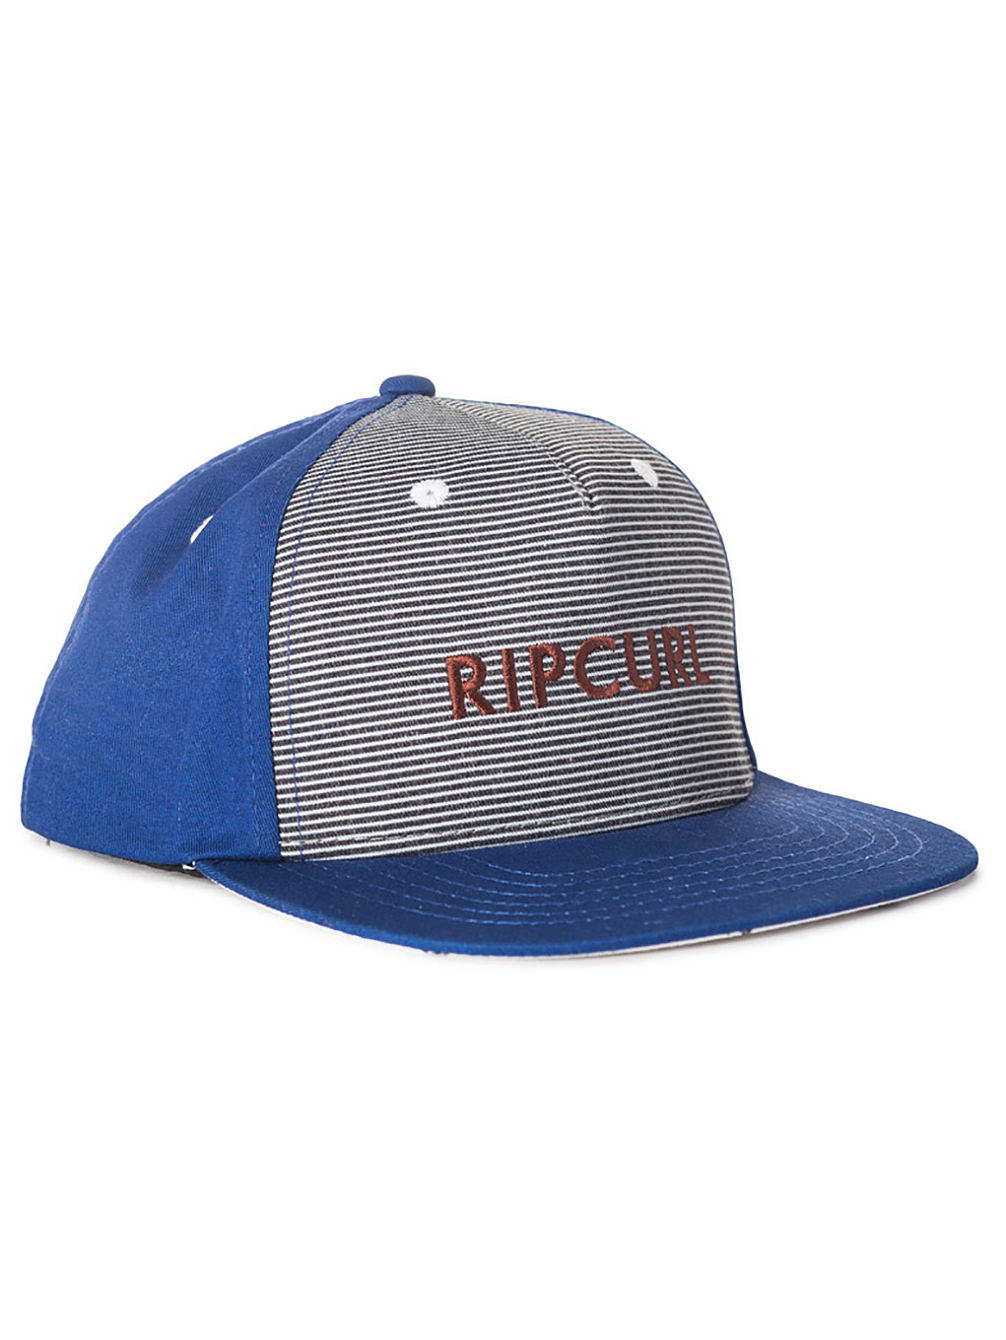 54704102a983fe Buy Rip Curl Yardage Cap Youth online at Blue Tomato